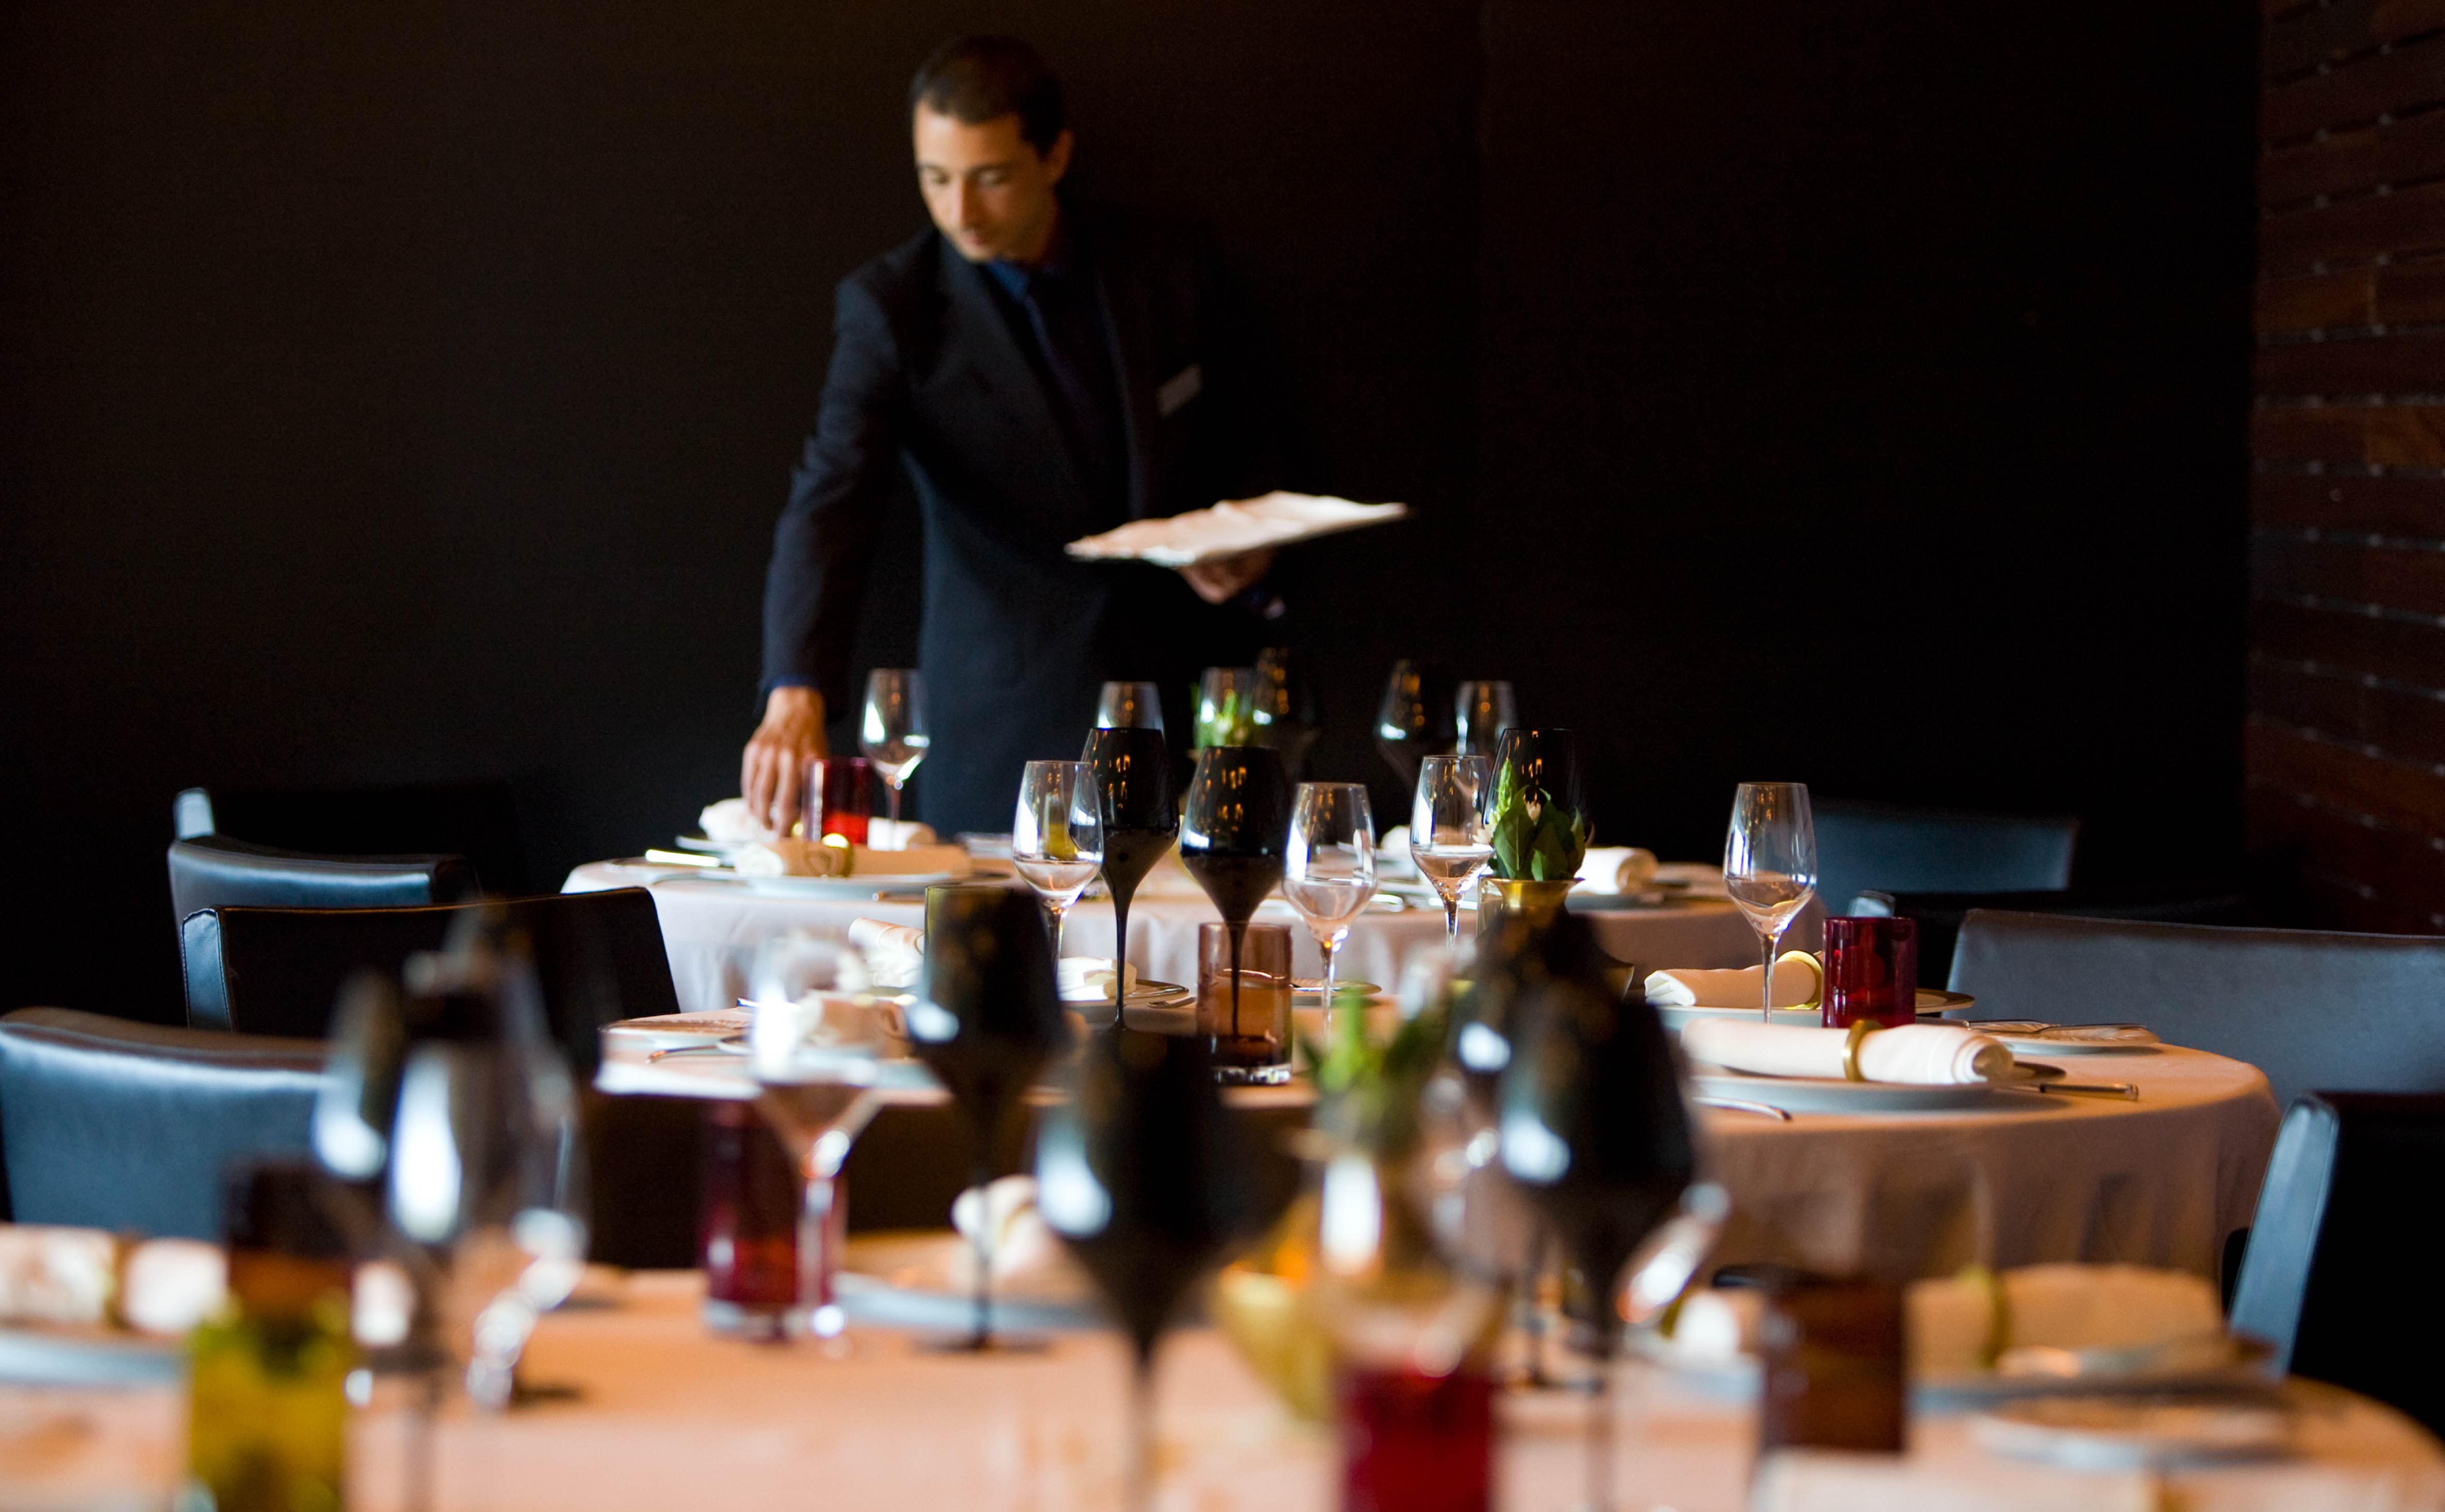 The restaurant feitoria again hosts the 3rd edition of Nespresso Gourmet Weeks